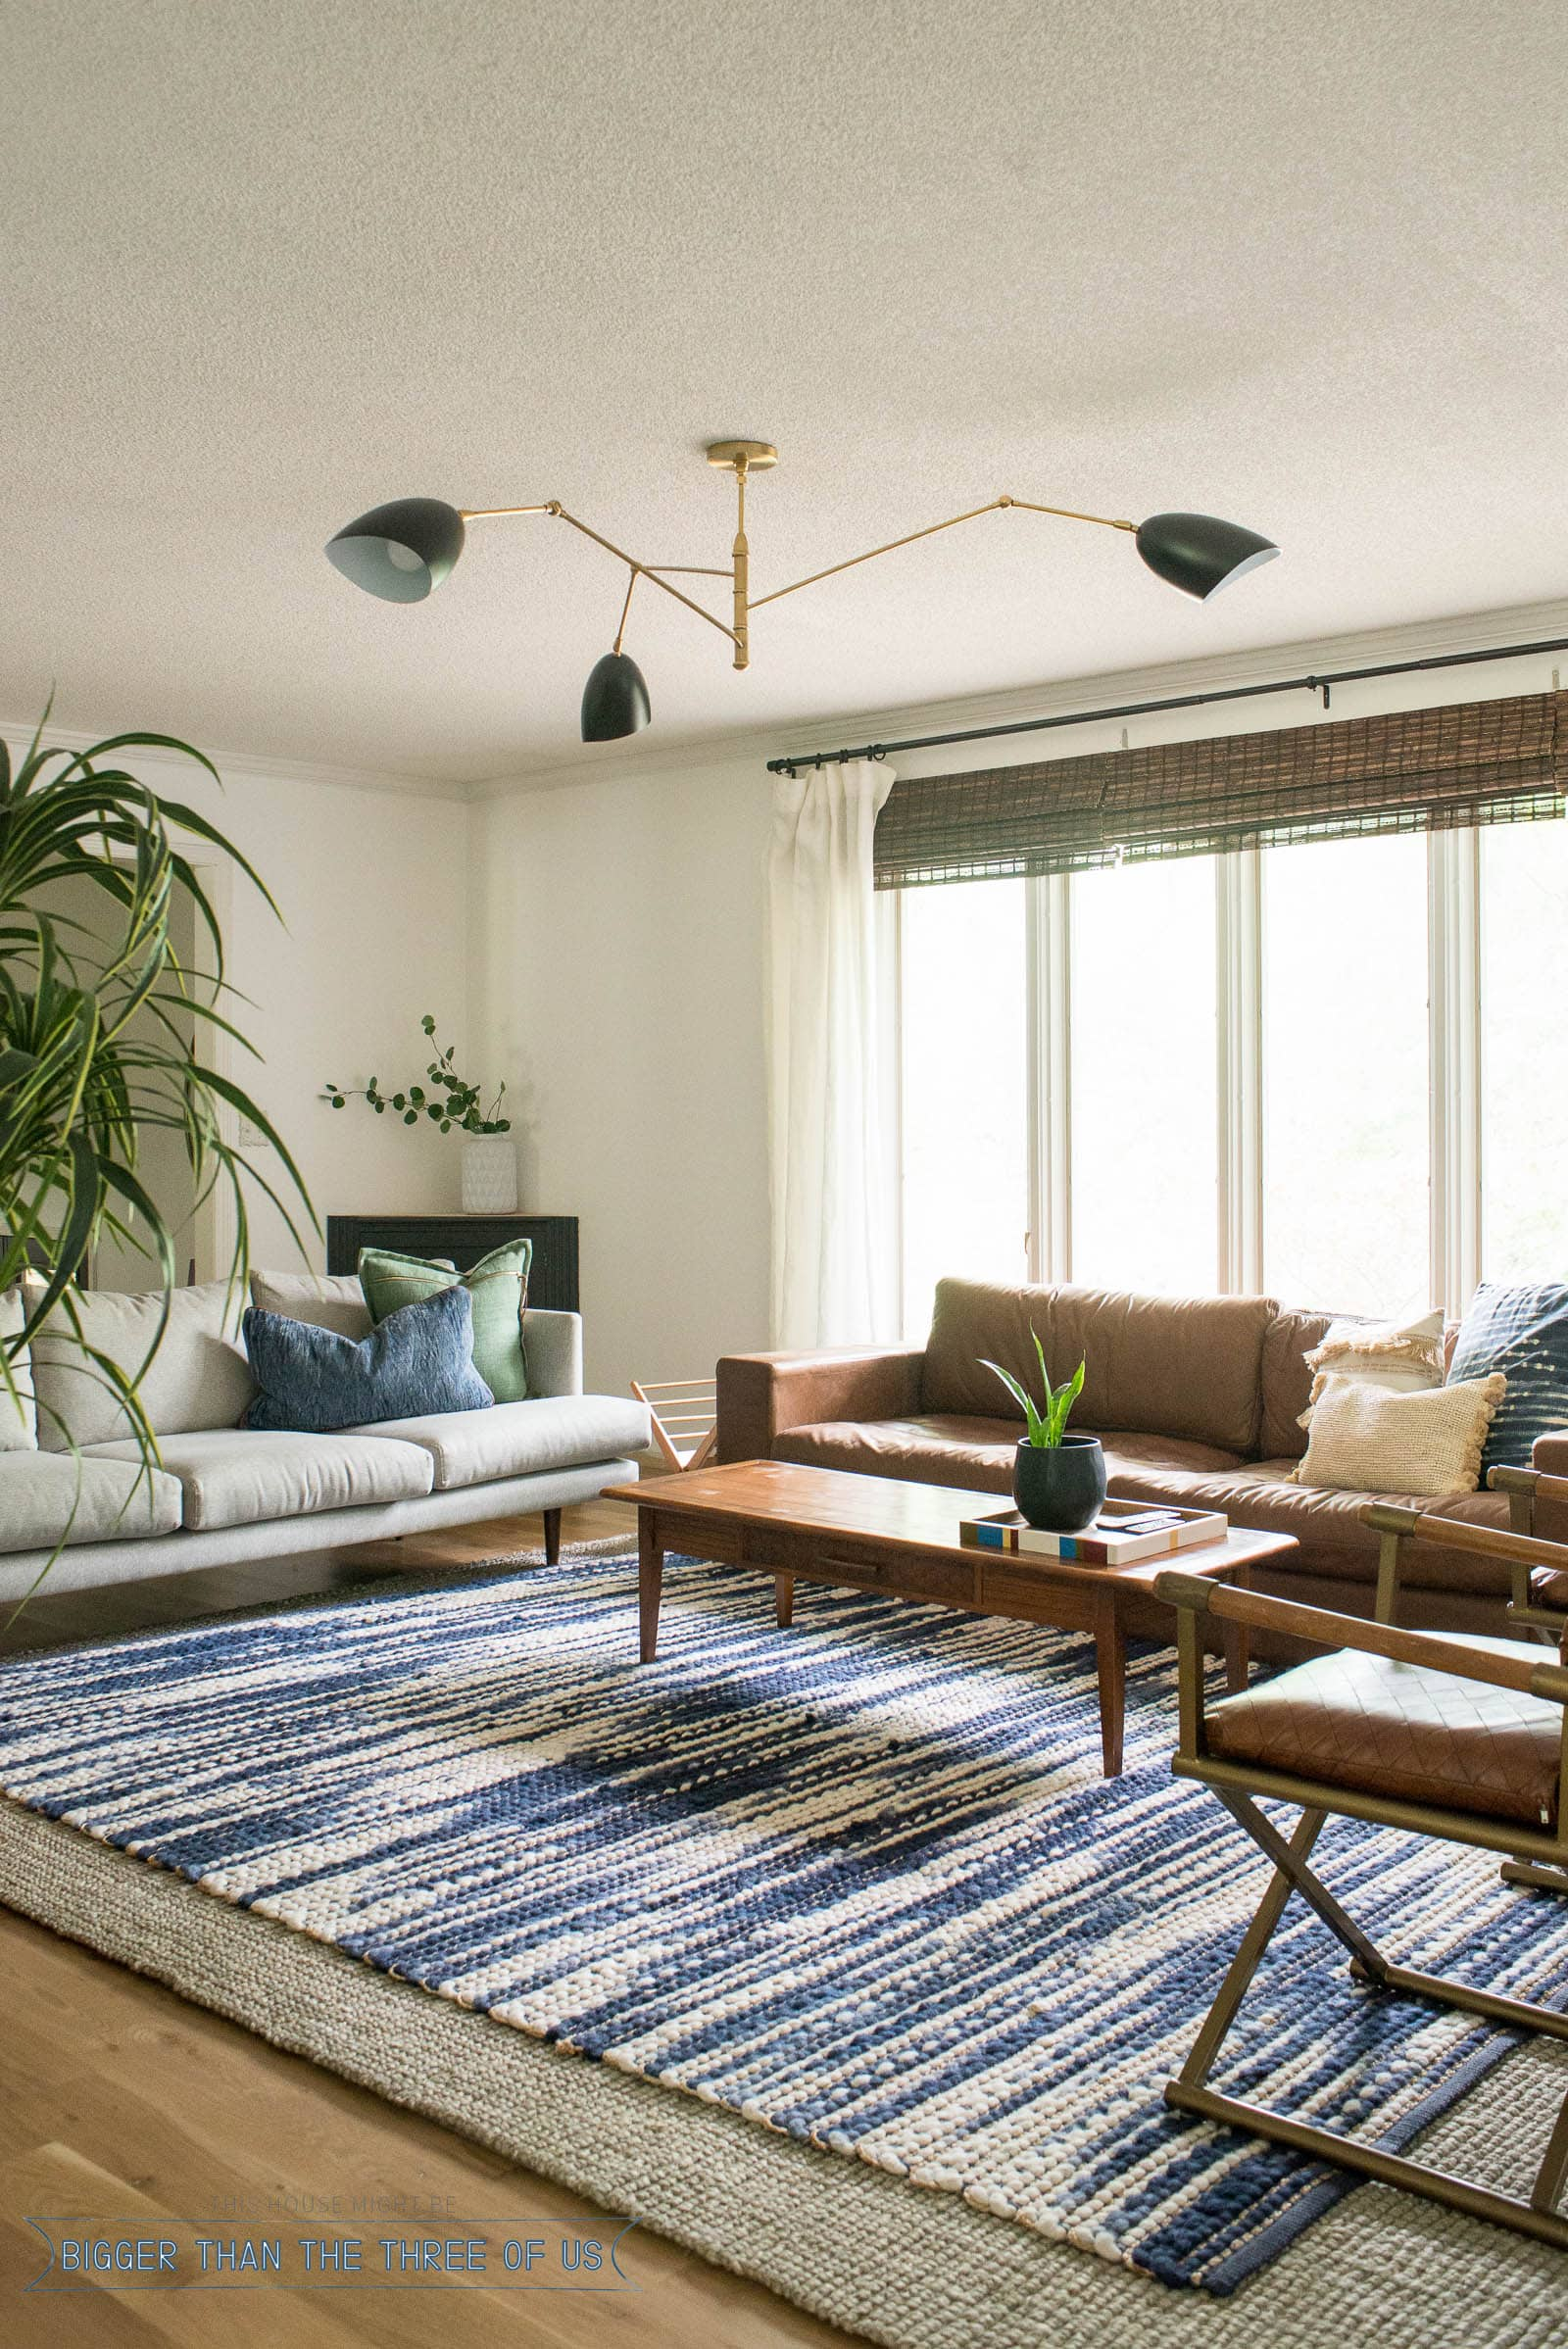 New Black and Brass light for the living room. Blue and white rug, leather couch in living room.